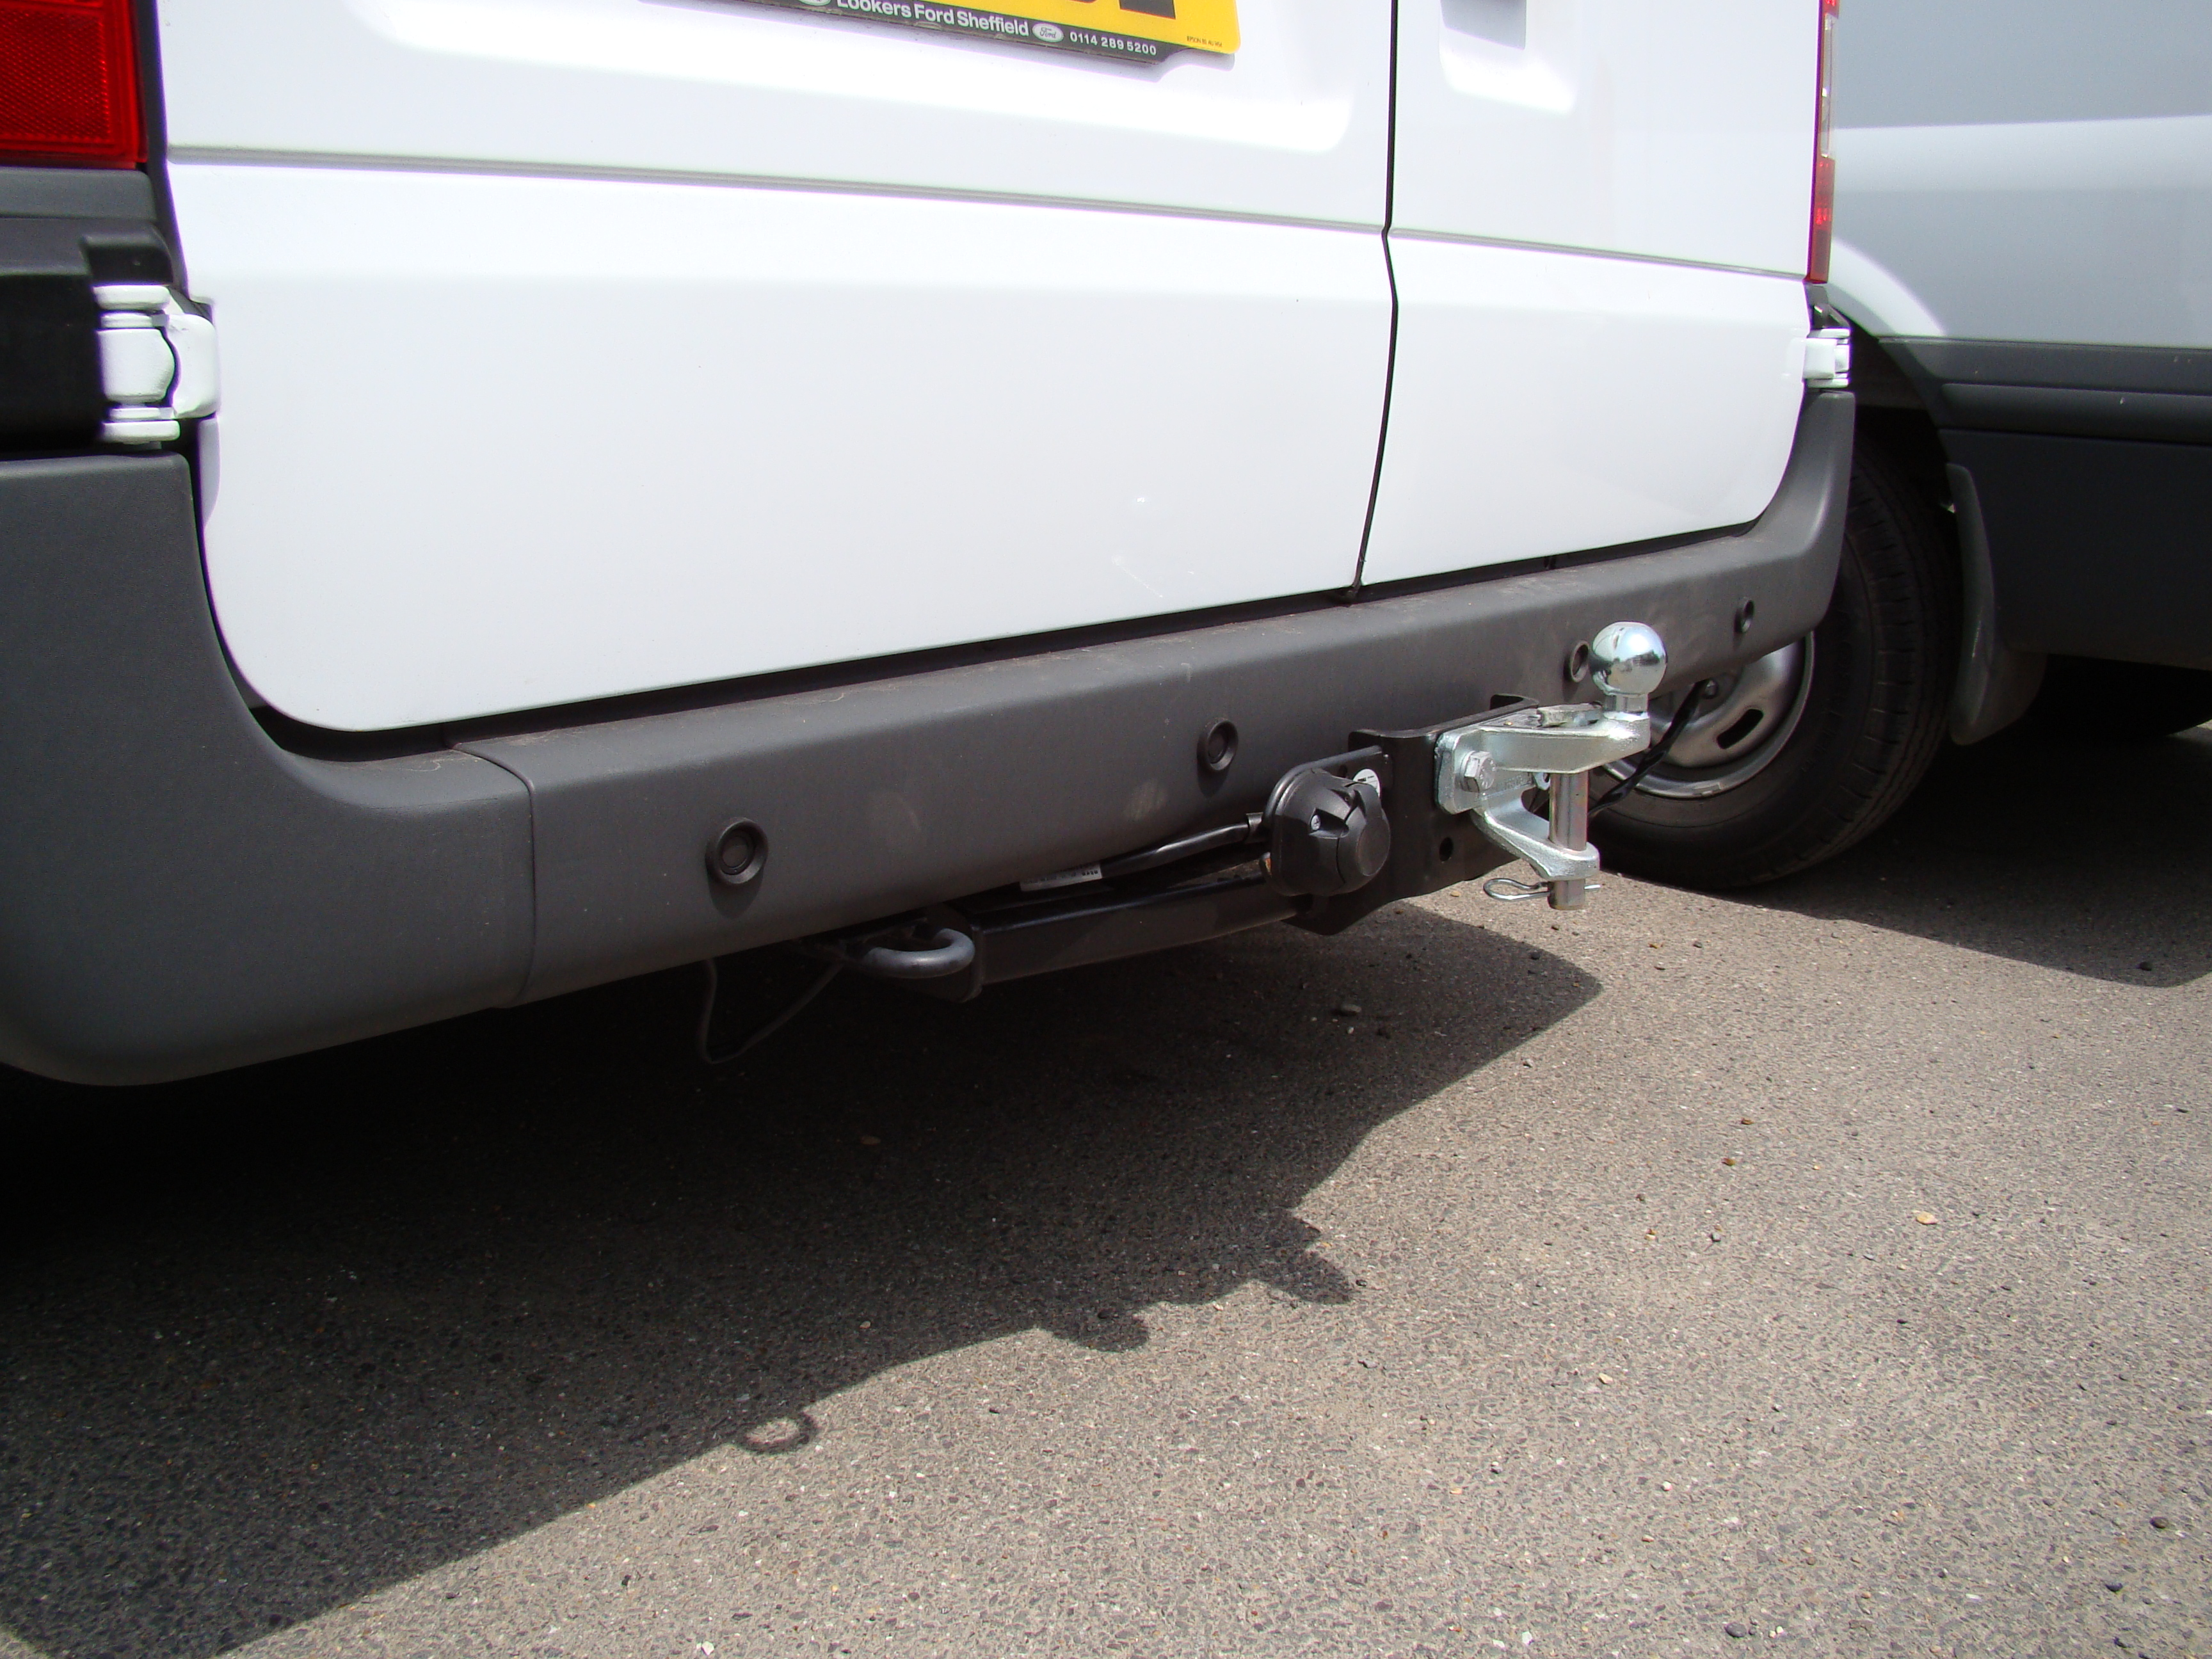 Standard Towbar with Ball Pin Coupling